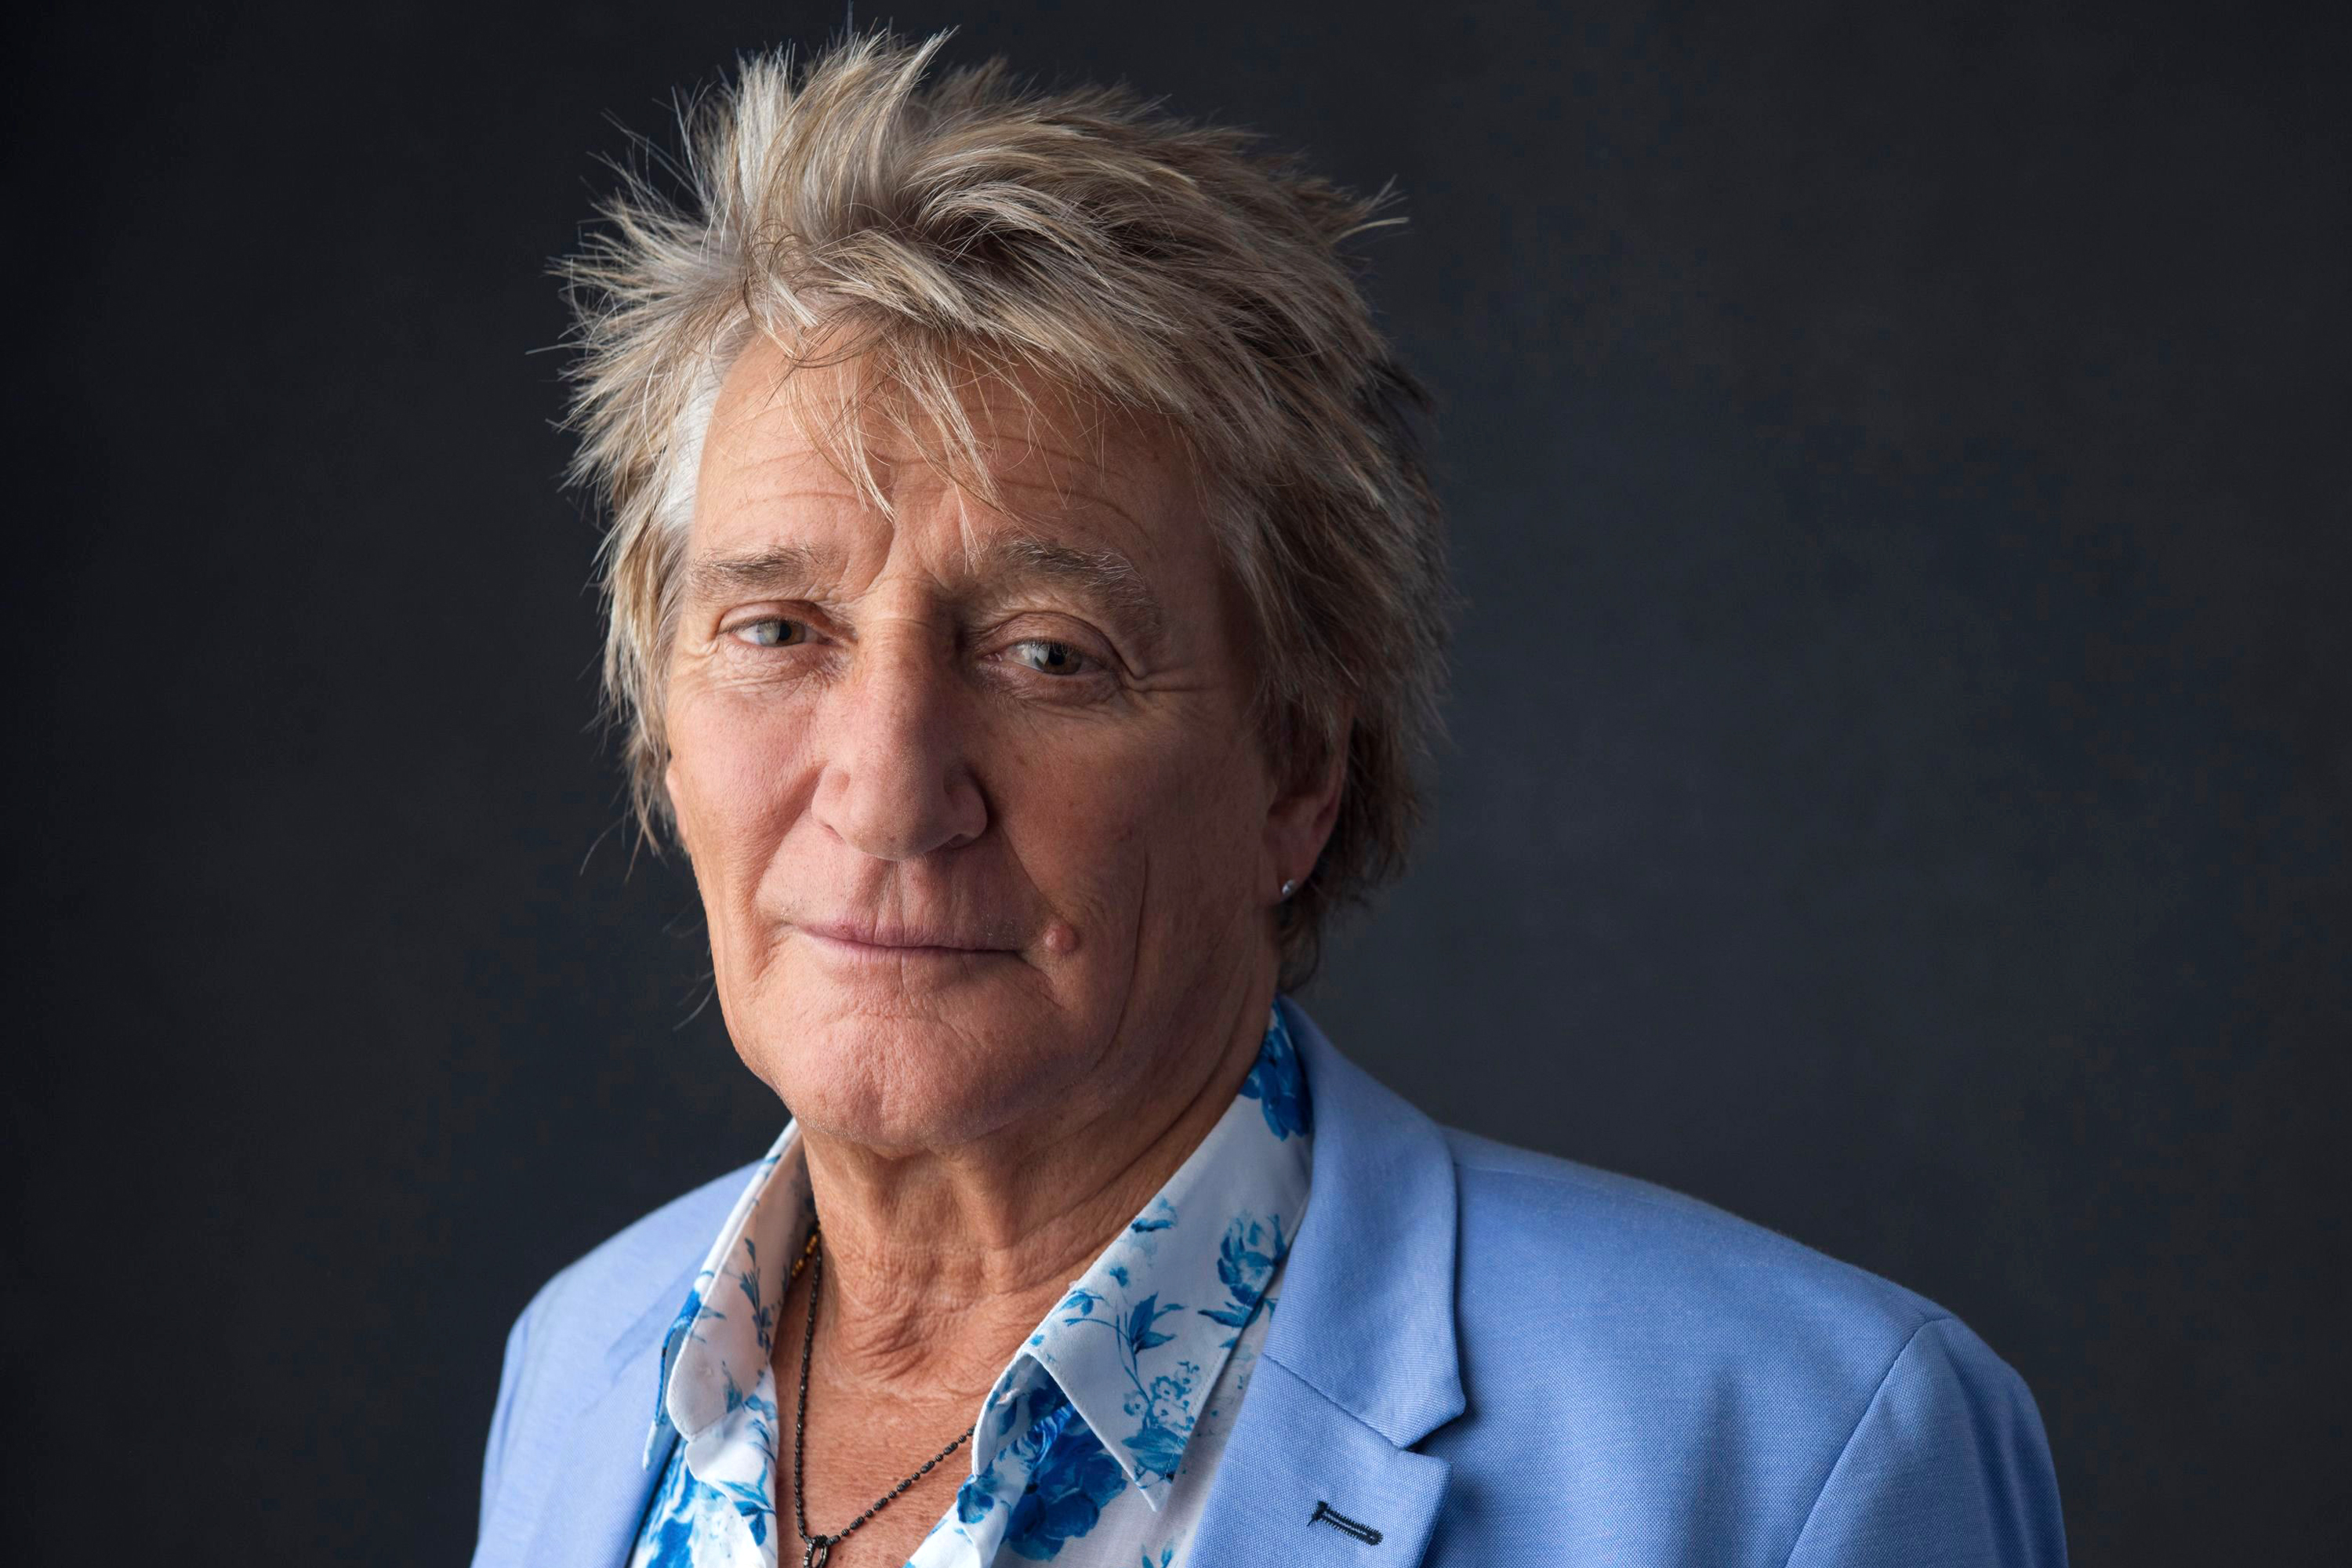 Listen to Rod Stewart's Guide to Life